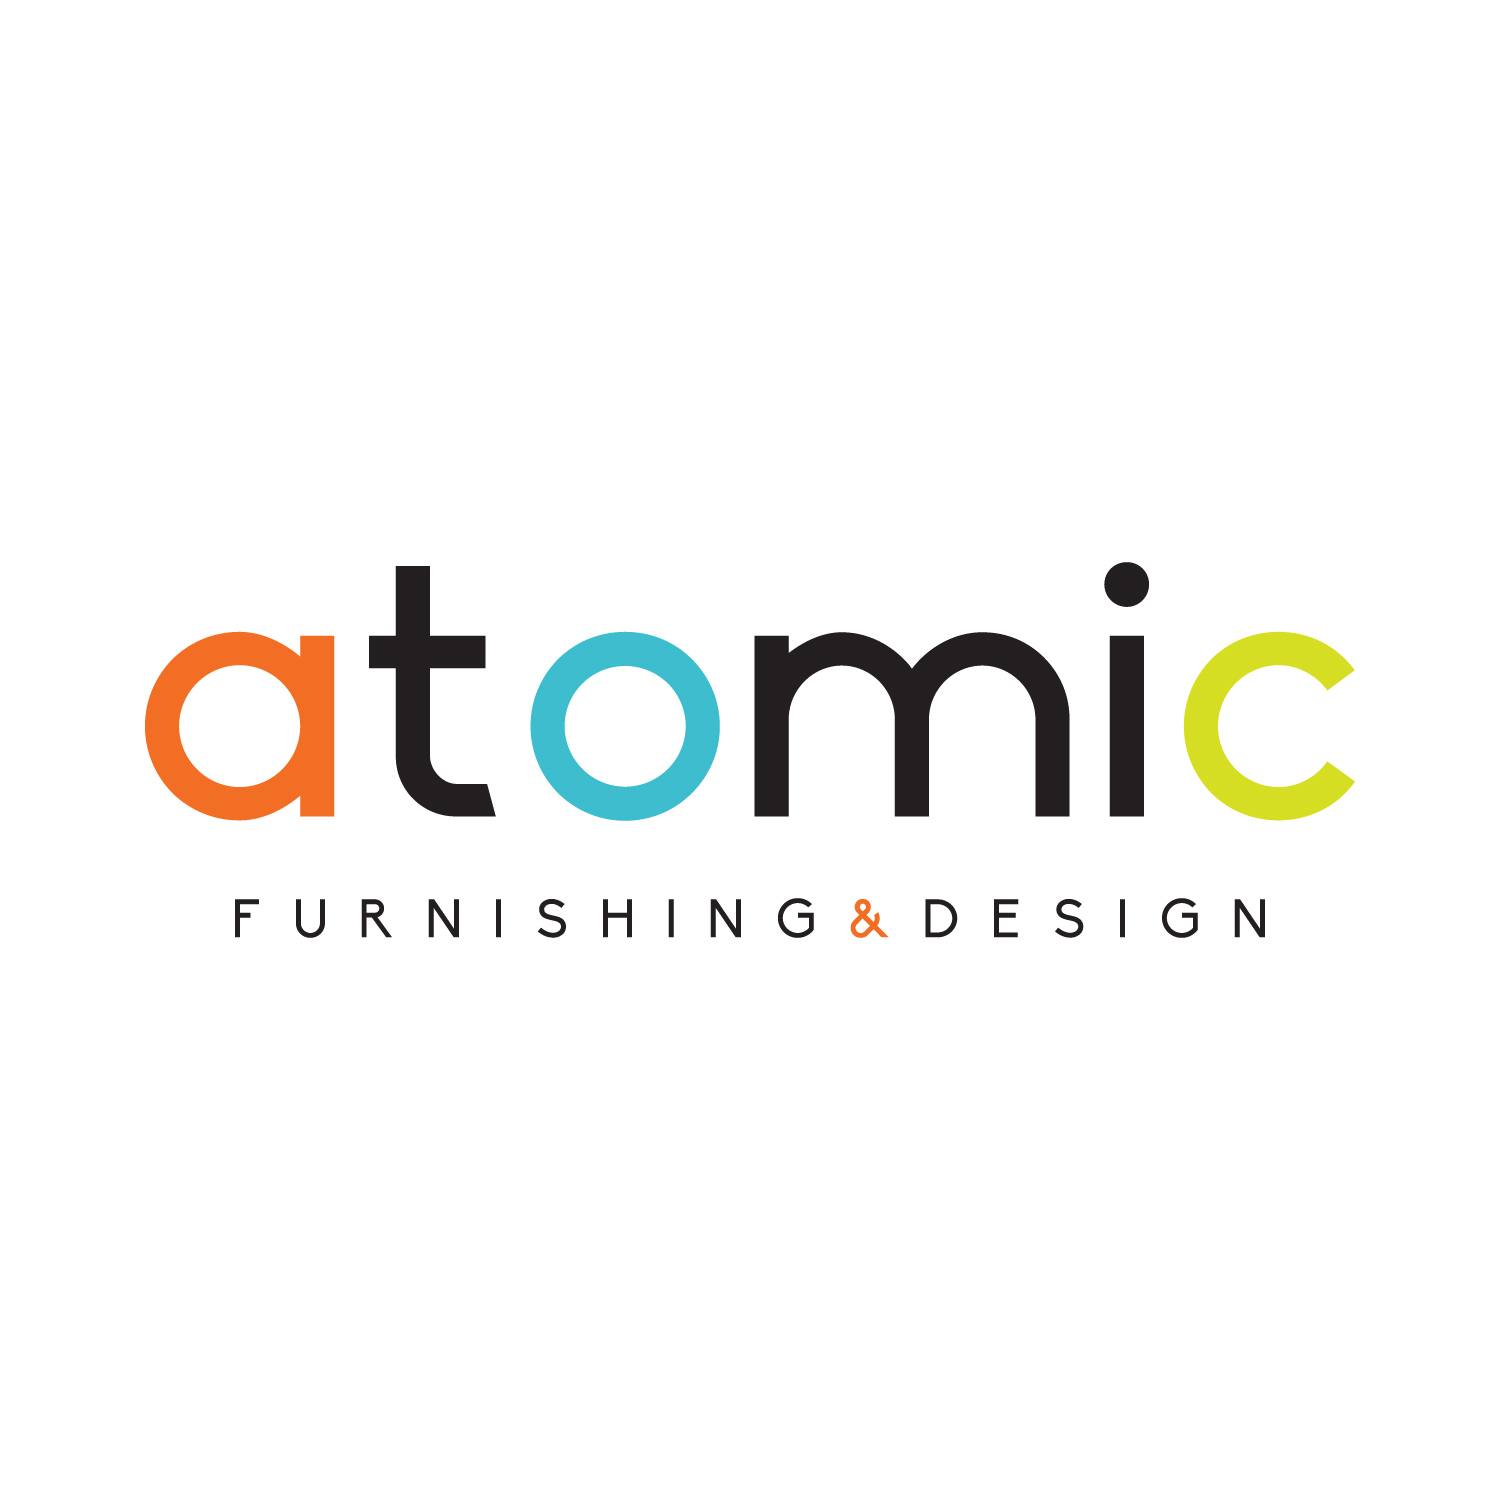 Atomic Furnishing & Design